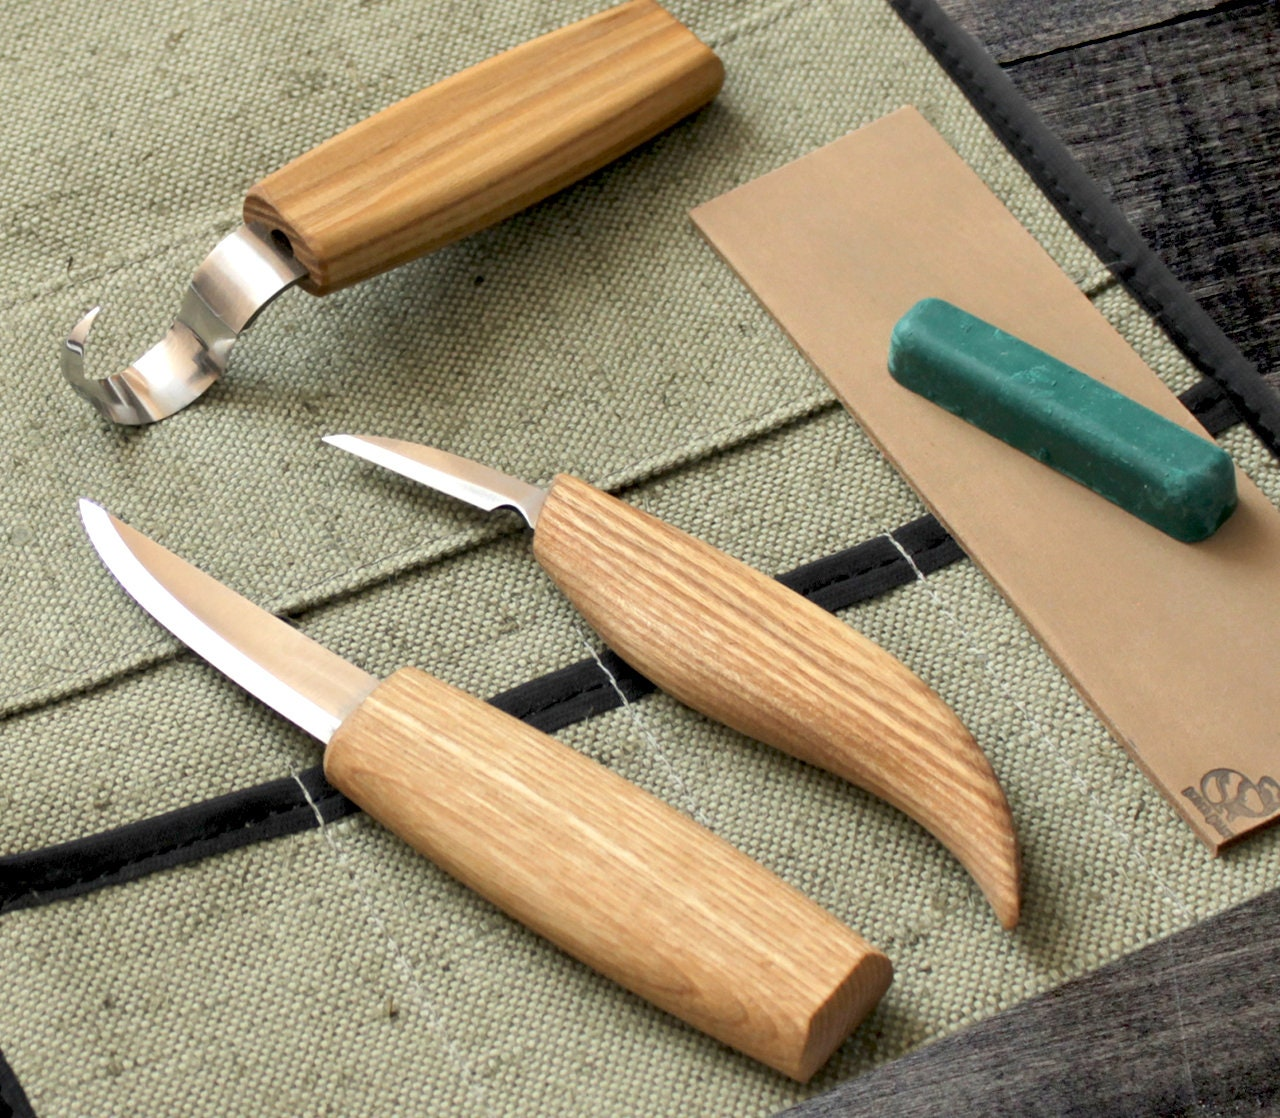 Wood Carving Knife: Wood Carving Knives Set Spoon Knife Spoon Carving Set TOP